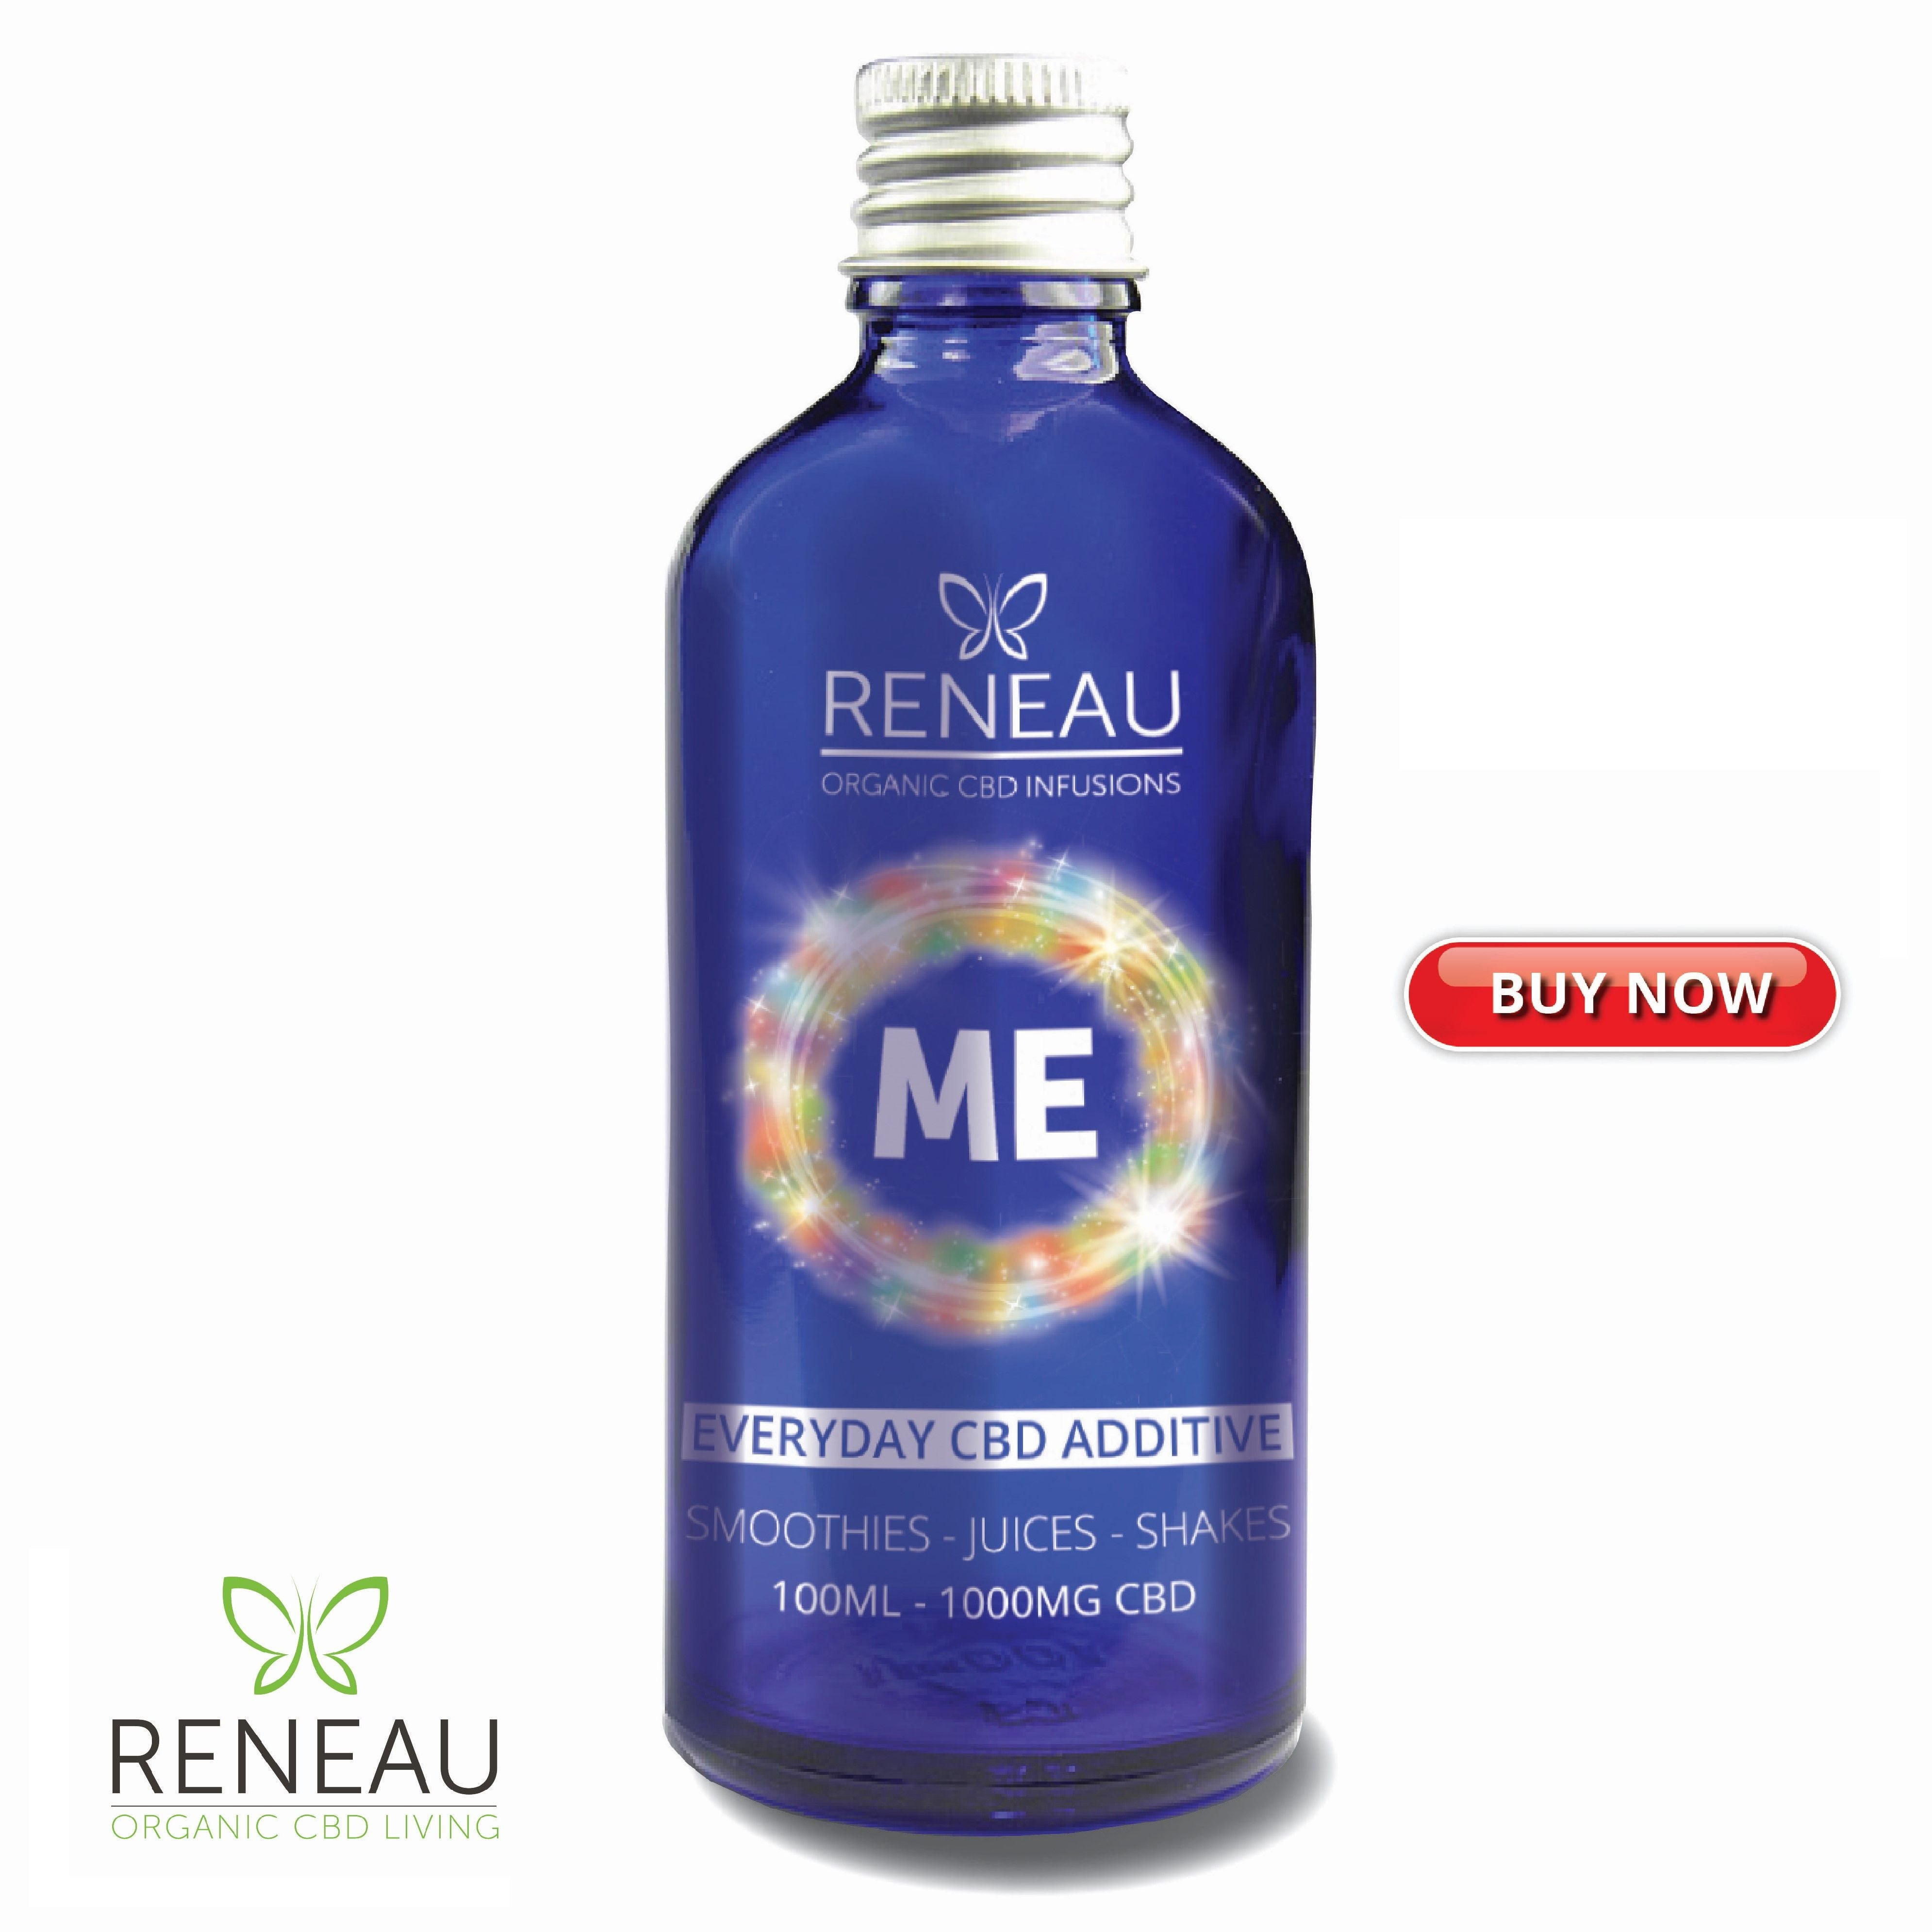 Product Image _press to buy now of Reneau ME | Everyday CBD Additive | Organic CBD Infusions | CBD Smoothies | CBD Juices | CBD Shakes | Natural Organic Pure Clean CBD Oils